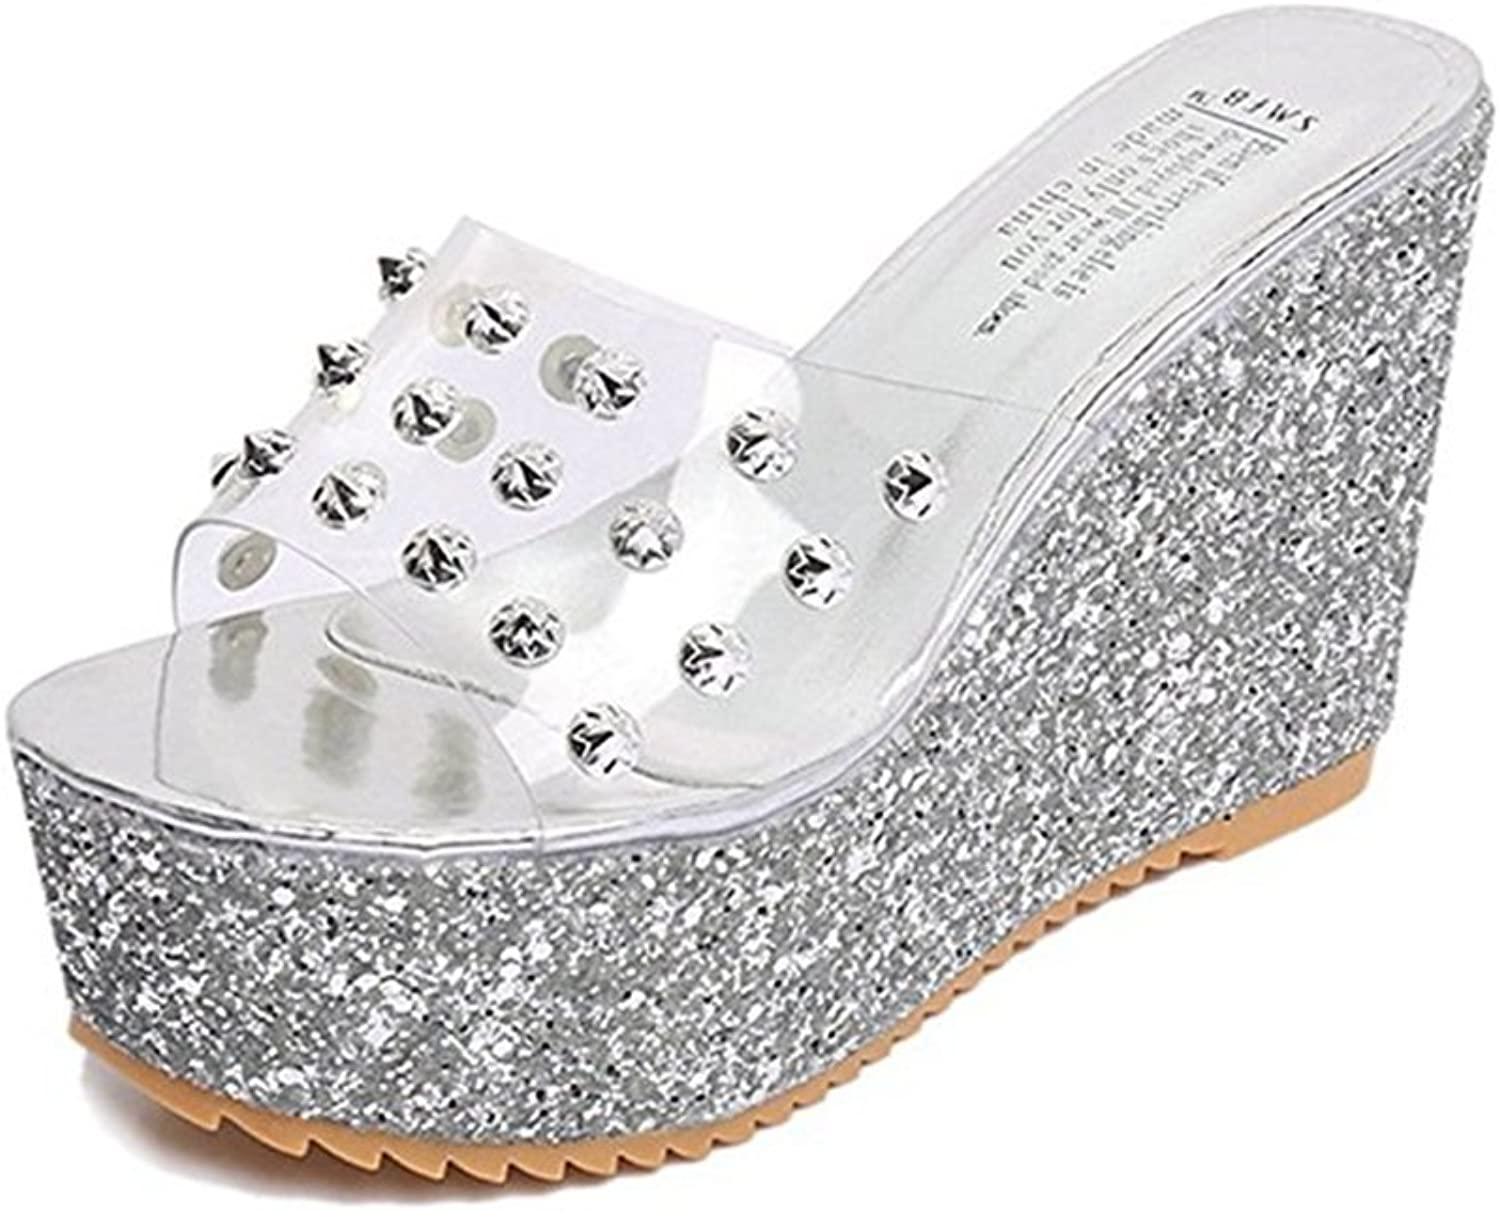 T-JULY Womens Ladies Wedge Platform Diamond Rhinestone Sparkly Bling Slides Sandals Waterproof Transparent Summer Slippers